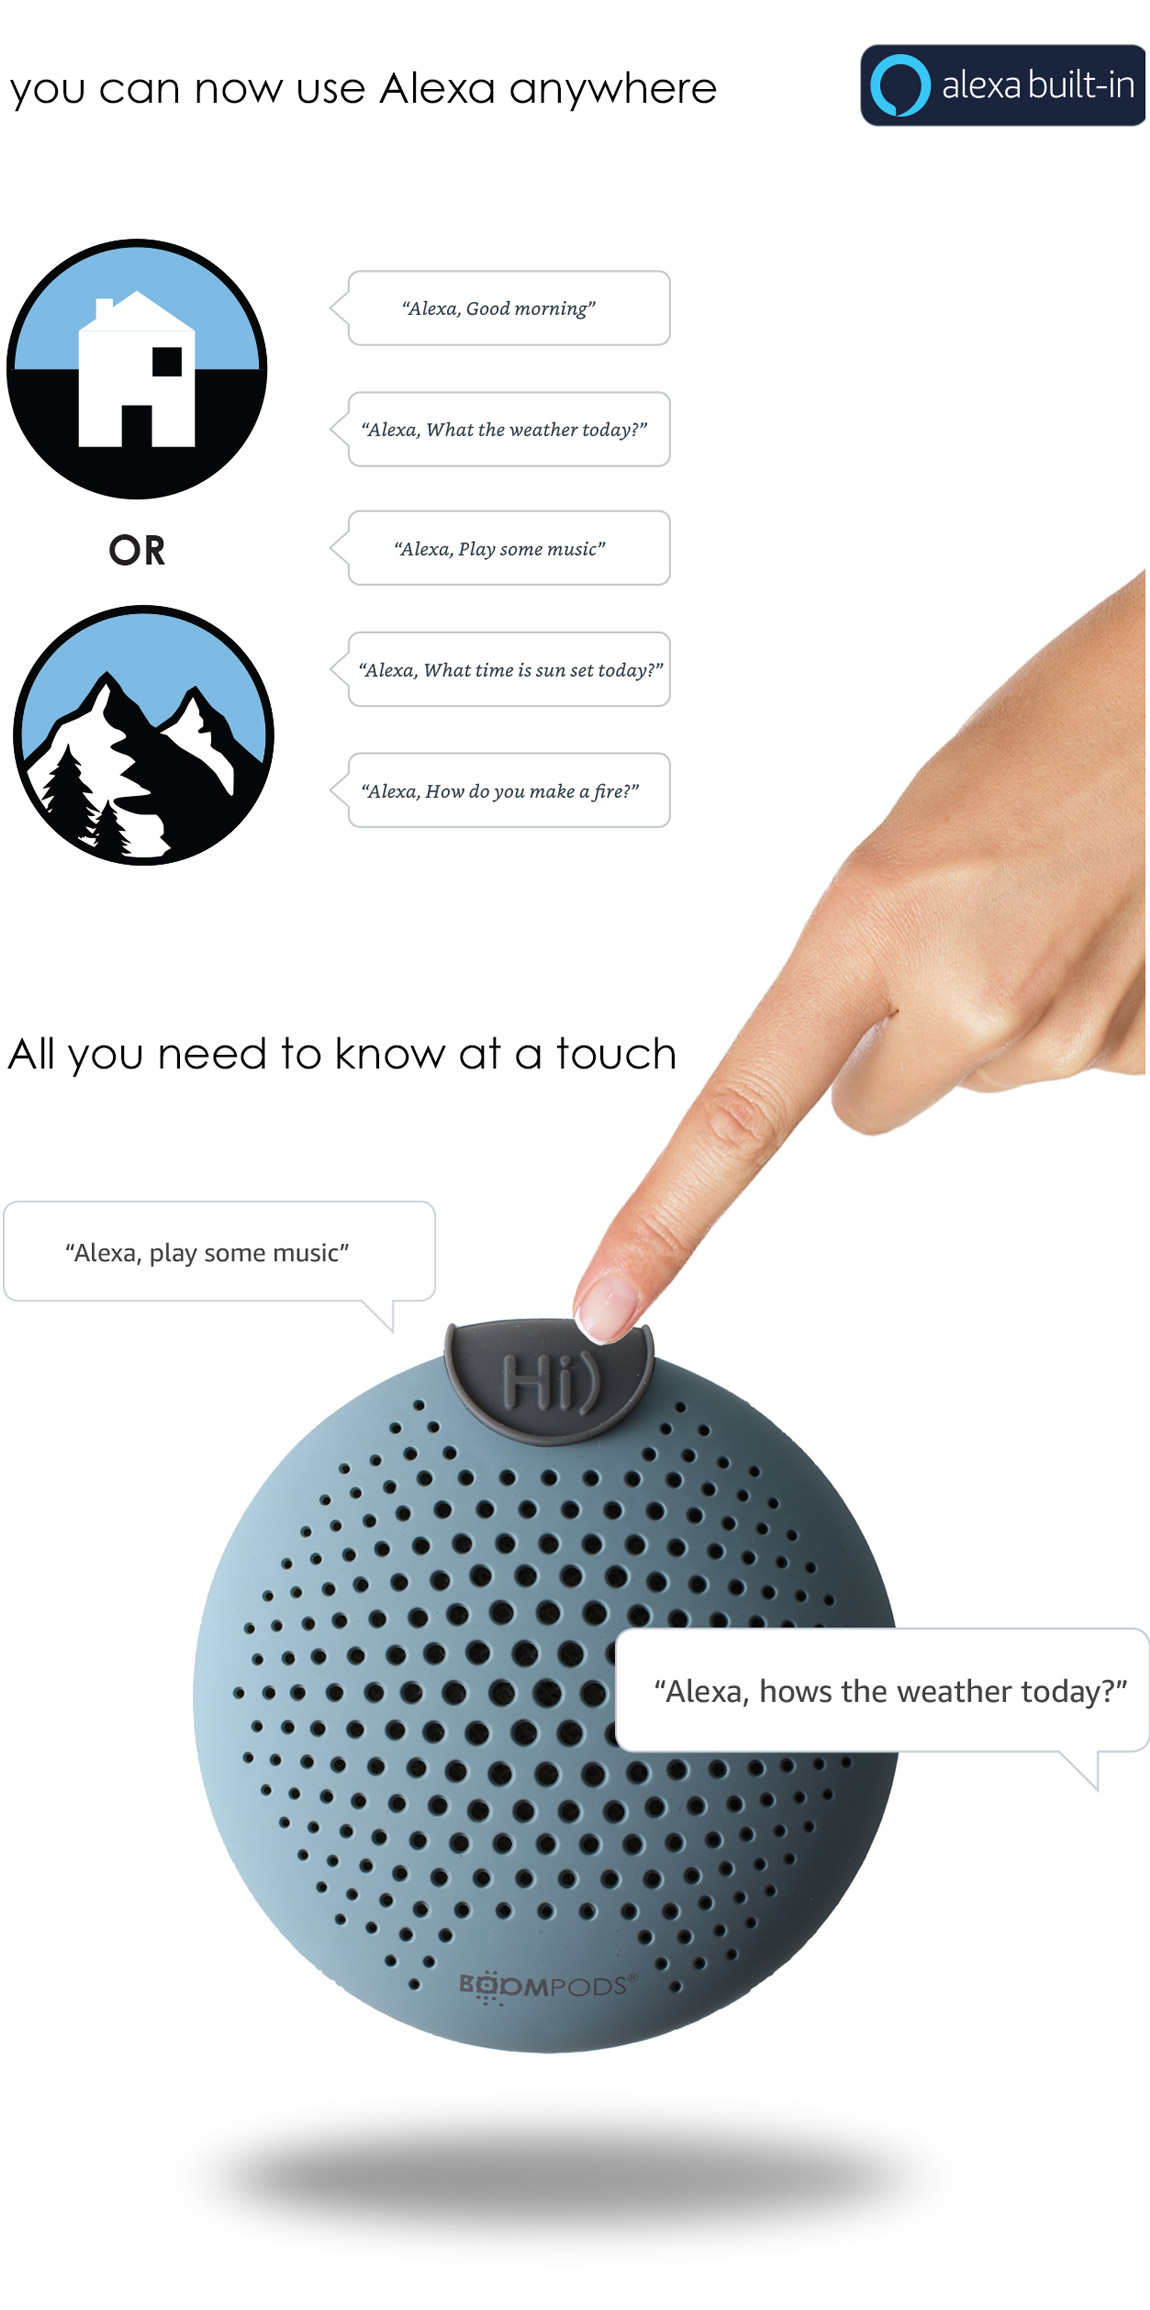 You can now use Alexa anywhere. Boompods Soundclip bluetooth Alexa speaker